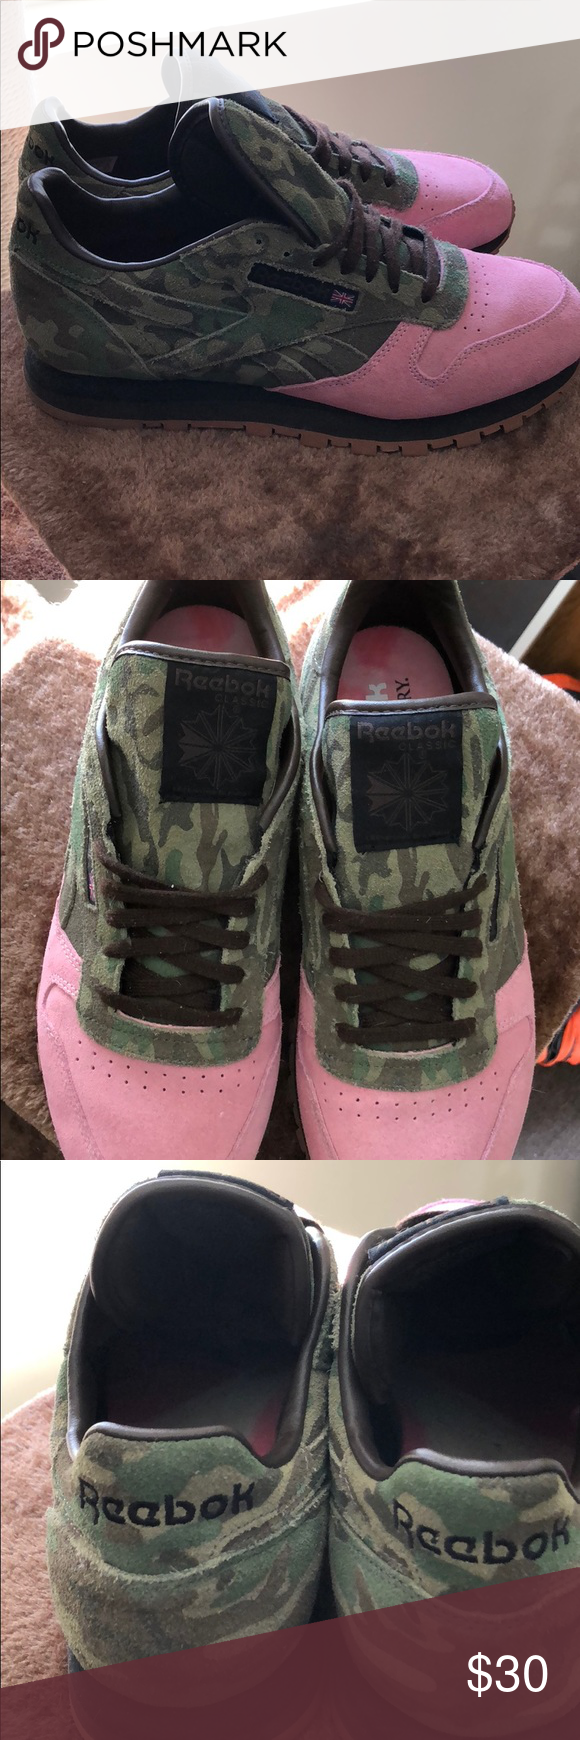 b77c5a32d964 Reebok pink and army print shoe gallery collab Reebok x shoe gallery  collab. Barely worn. New condition. MENS 8.5 women s 10. Reebok Shoes  Sneakers